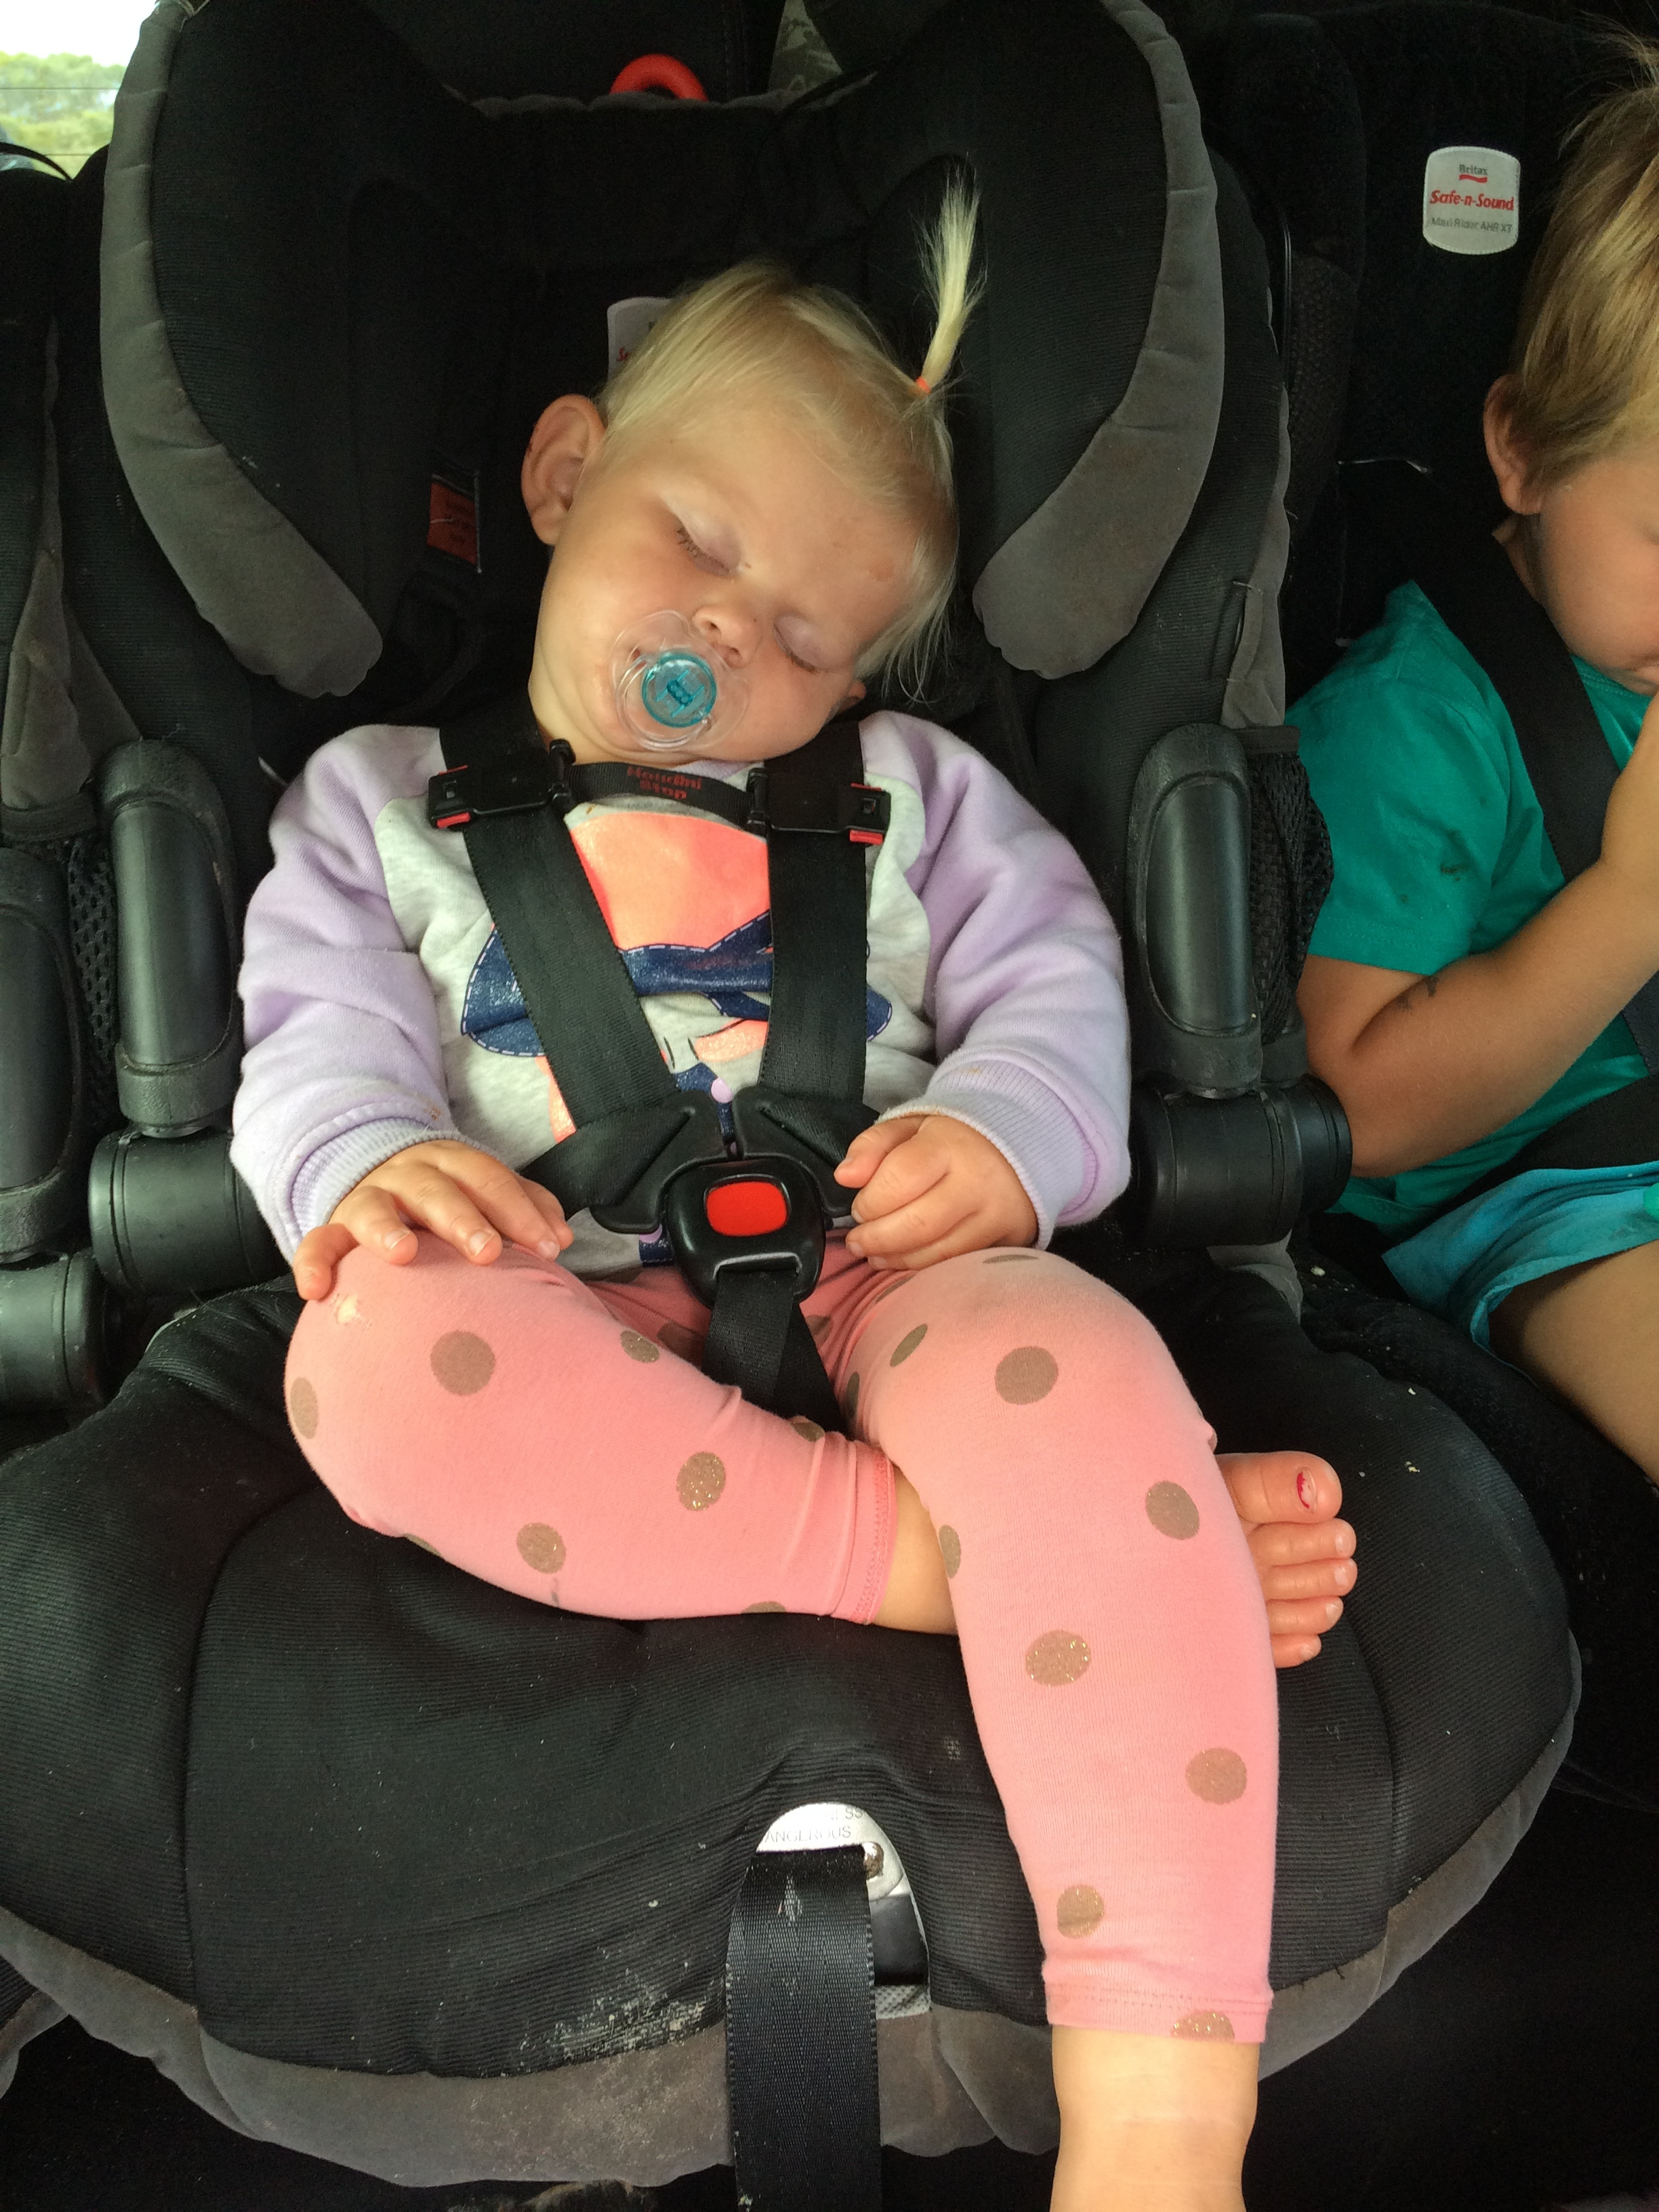 Car naps make for a peaceful travel.